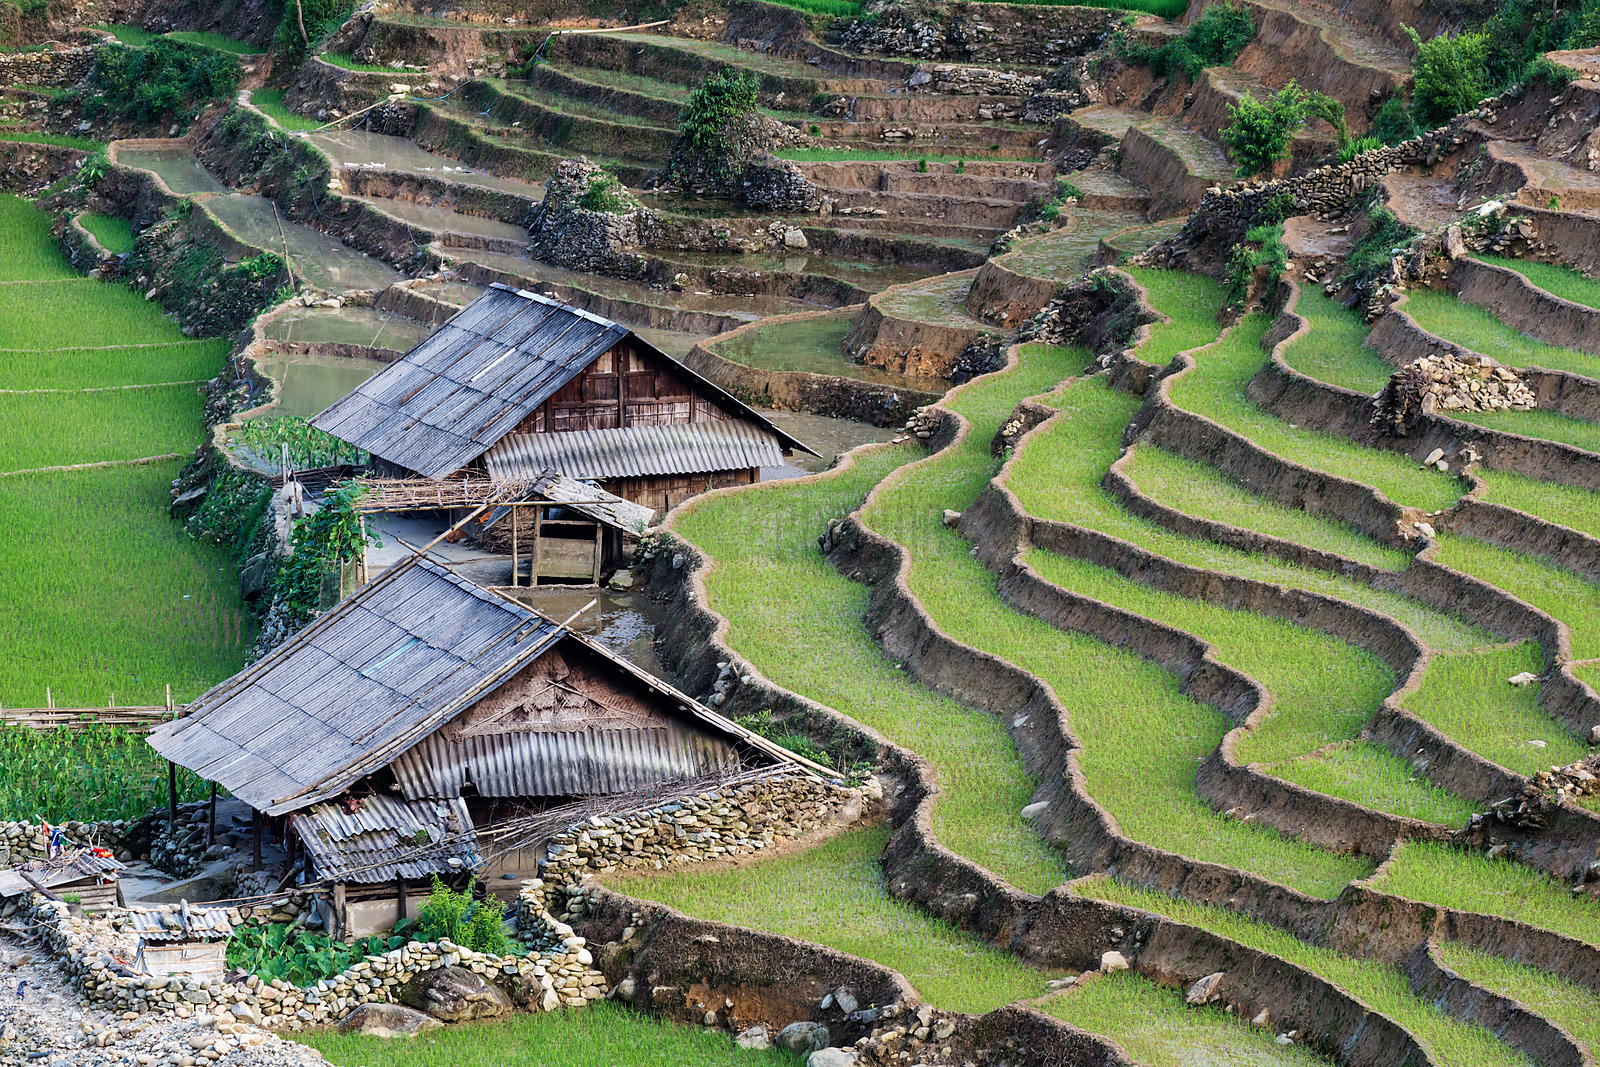 Elevated View of Rice Paddies and Settlements along a River